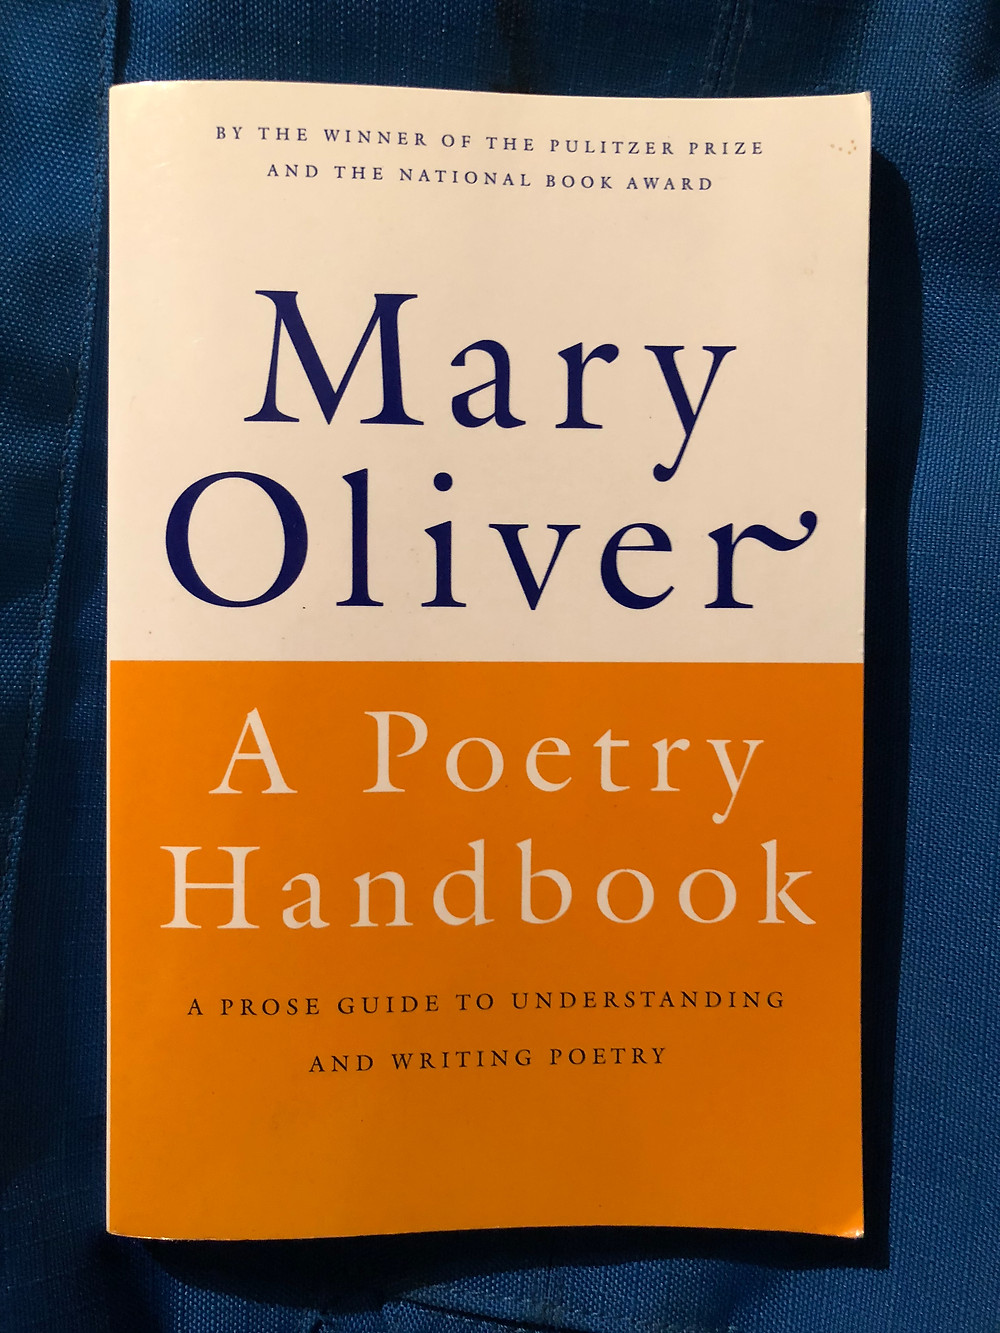 Mary Oliver 'A Poetry Handbook'